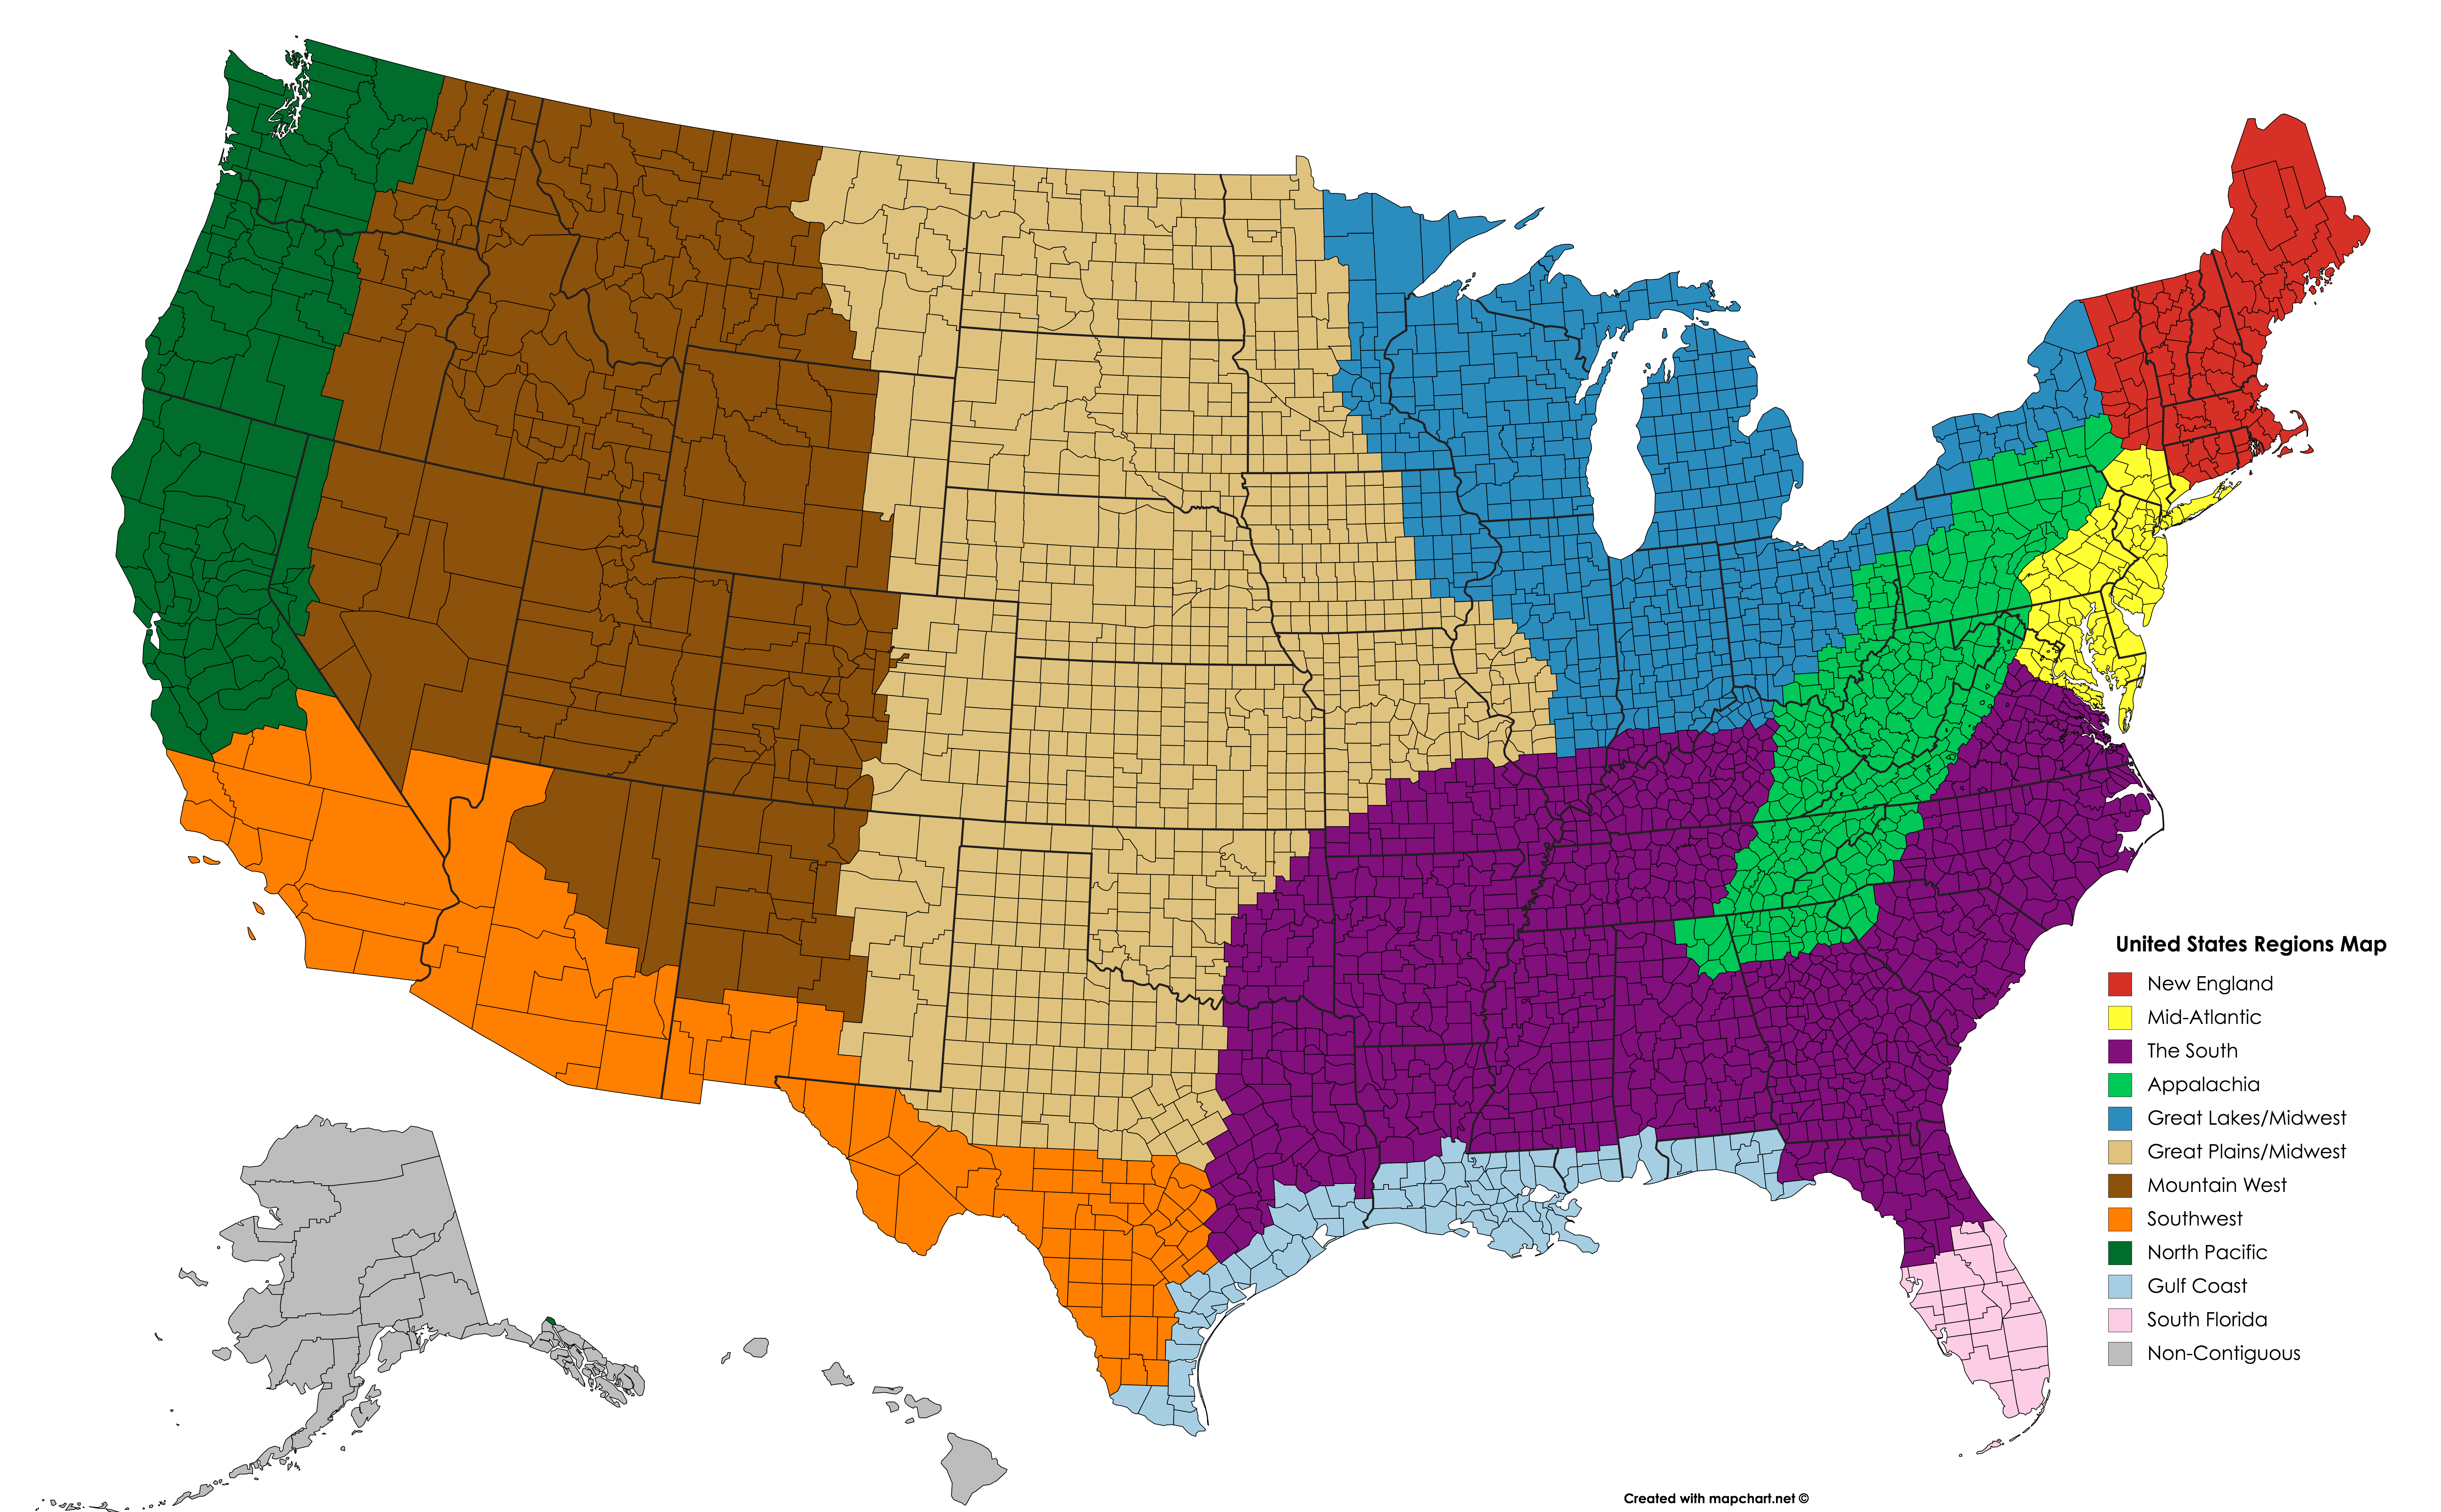 United States Regions Map   Historical maps, United states, Map